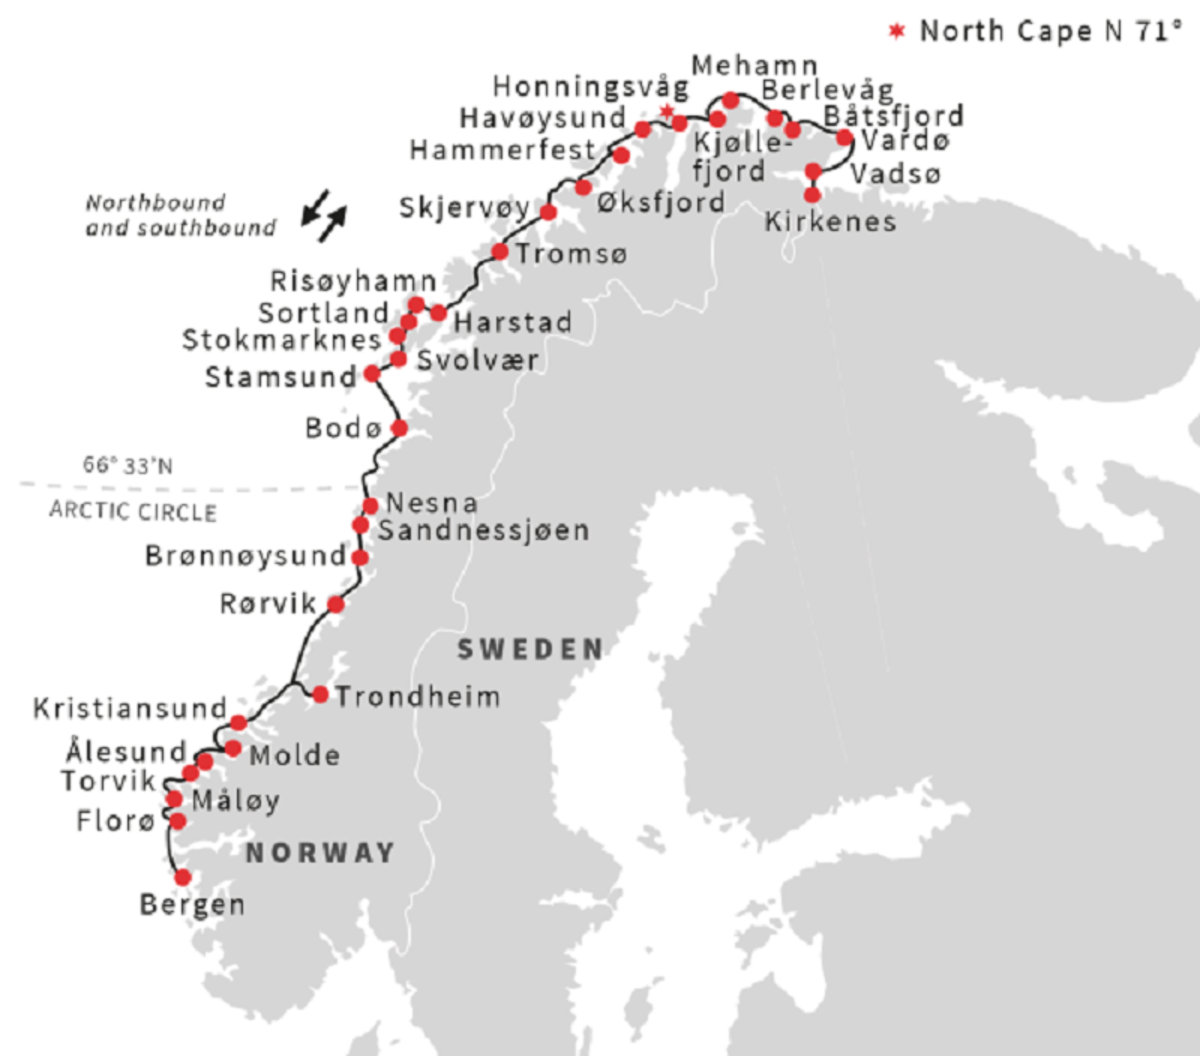 North and southbound stops on the Hurtigruten Norwegian coastal ferry.